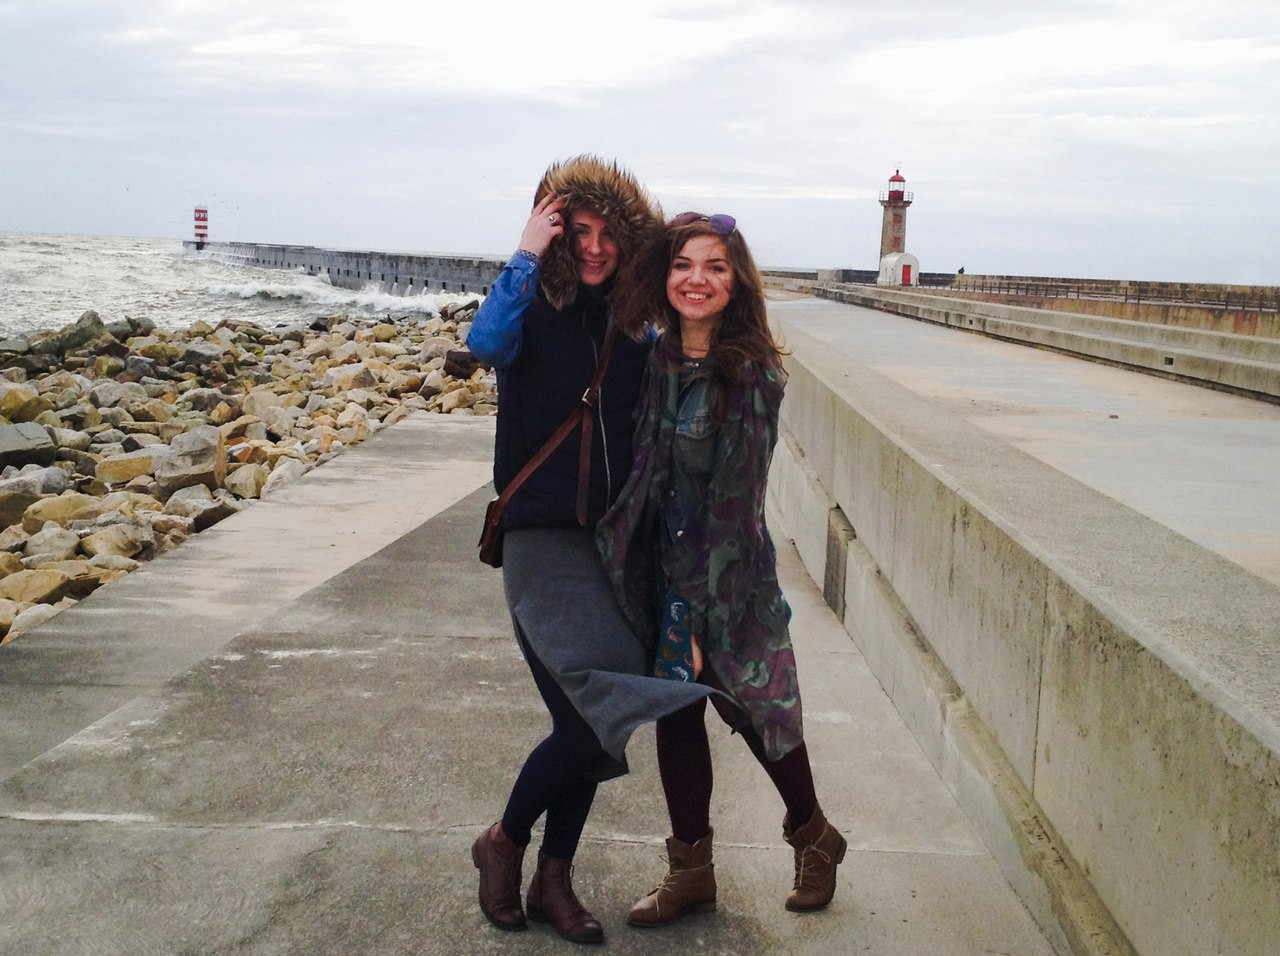 tips on trip to Portugal from travel blogger